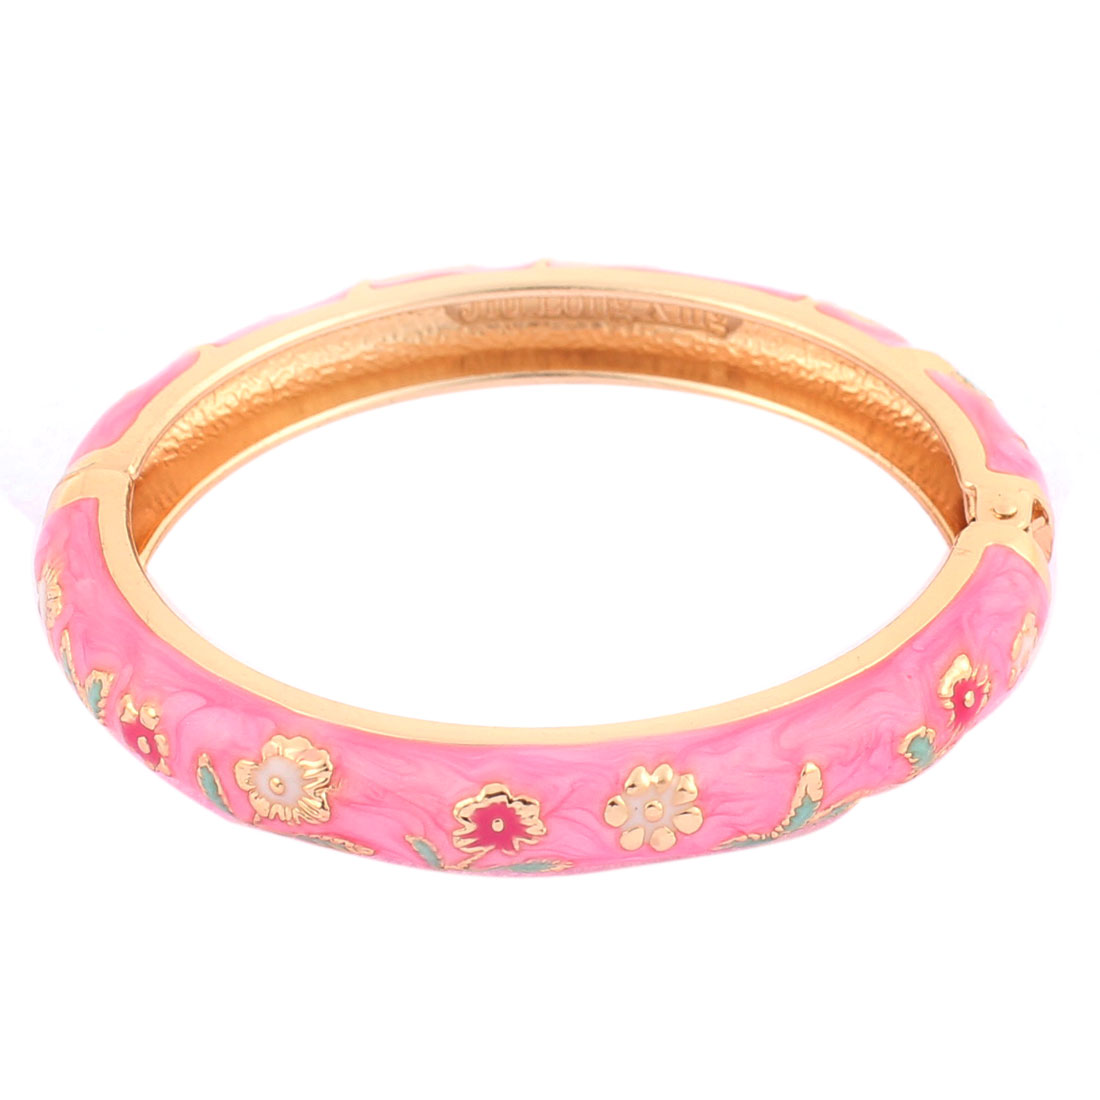 Girl Spring Closure Flowers Enamel Round Wrist Bracelet Bangle Pink